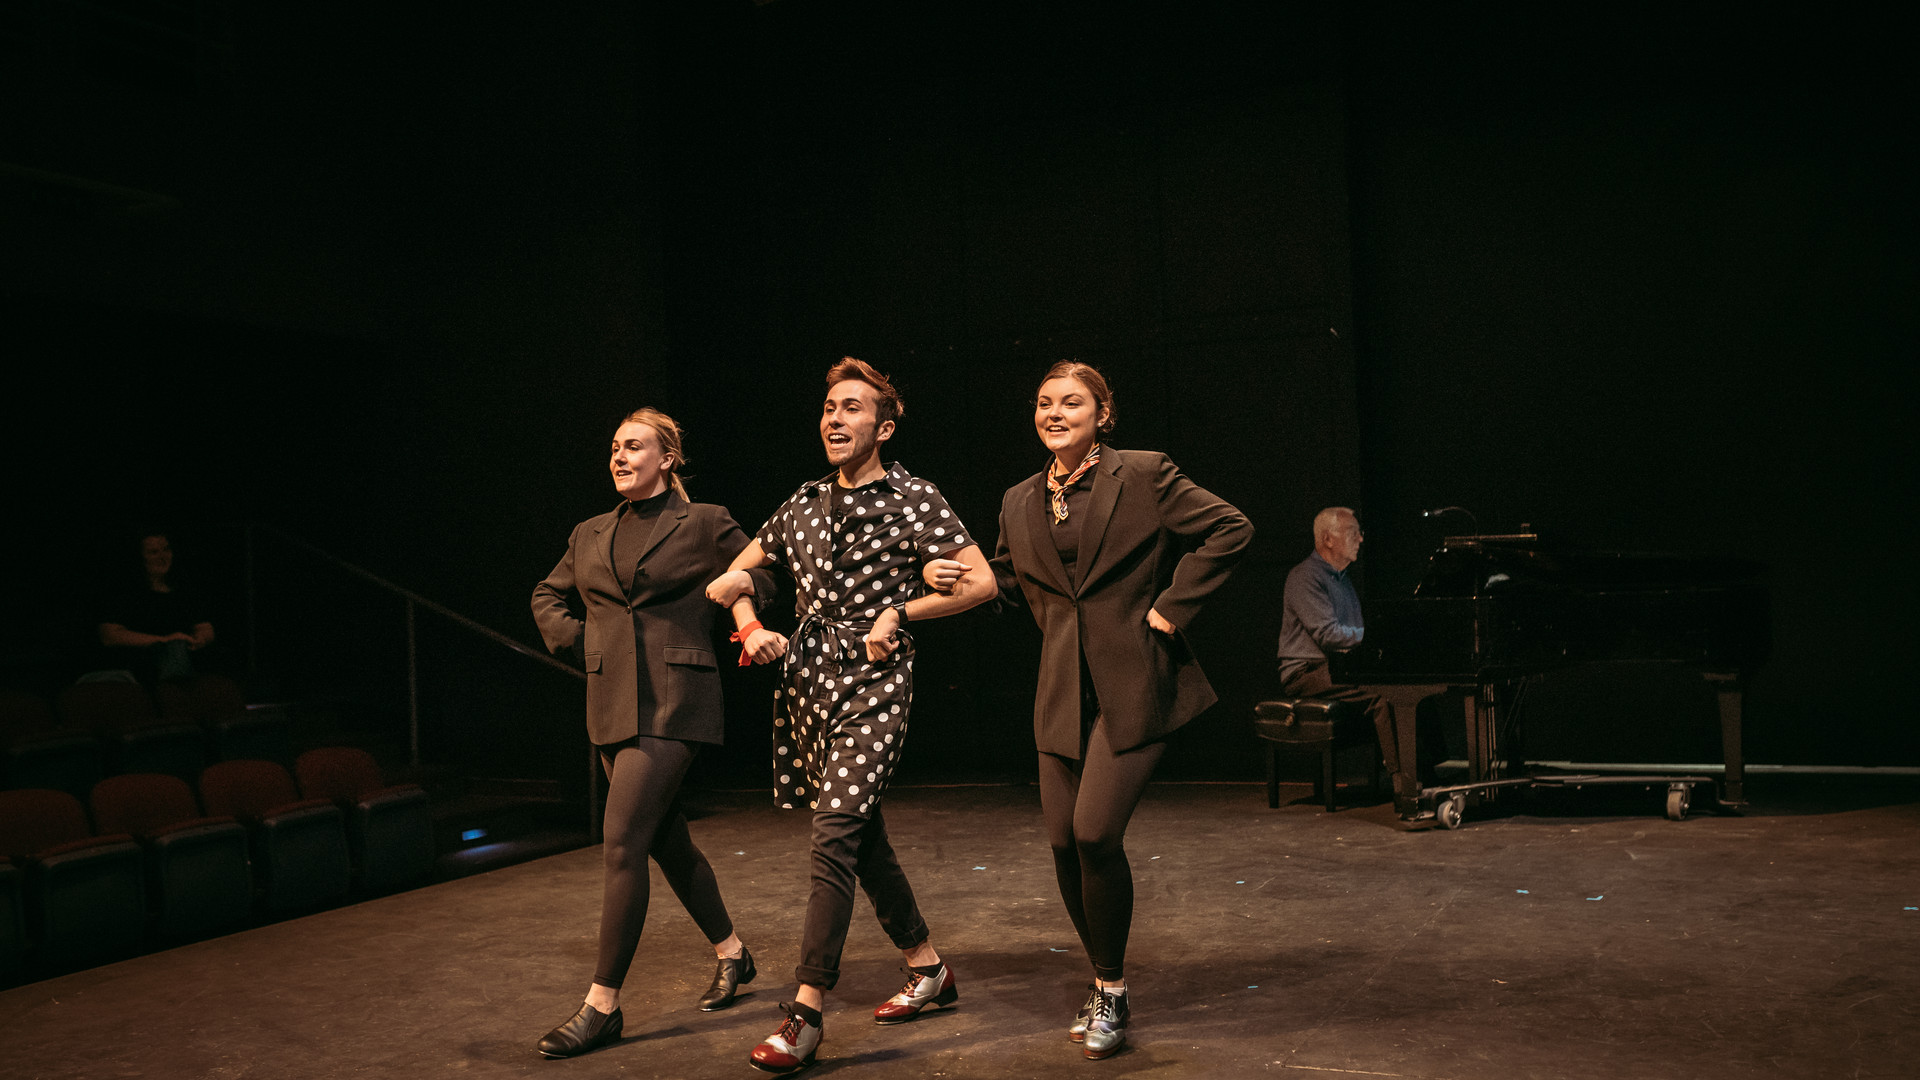 """Good Mornin'"" from Singin' in the Rain (Annie Cahill, Keaton Brandt, Savanna Worthington)"